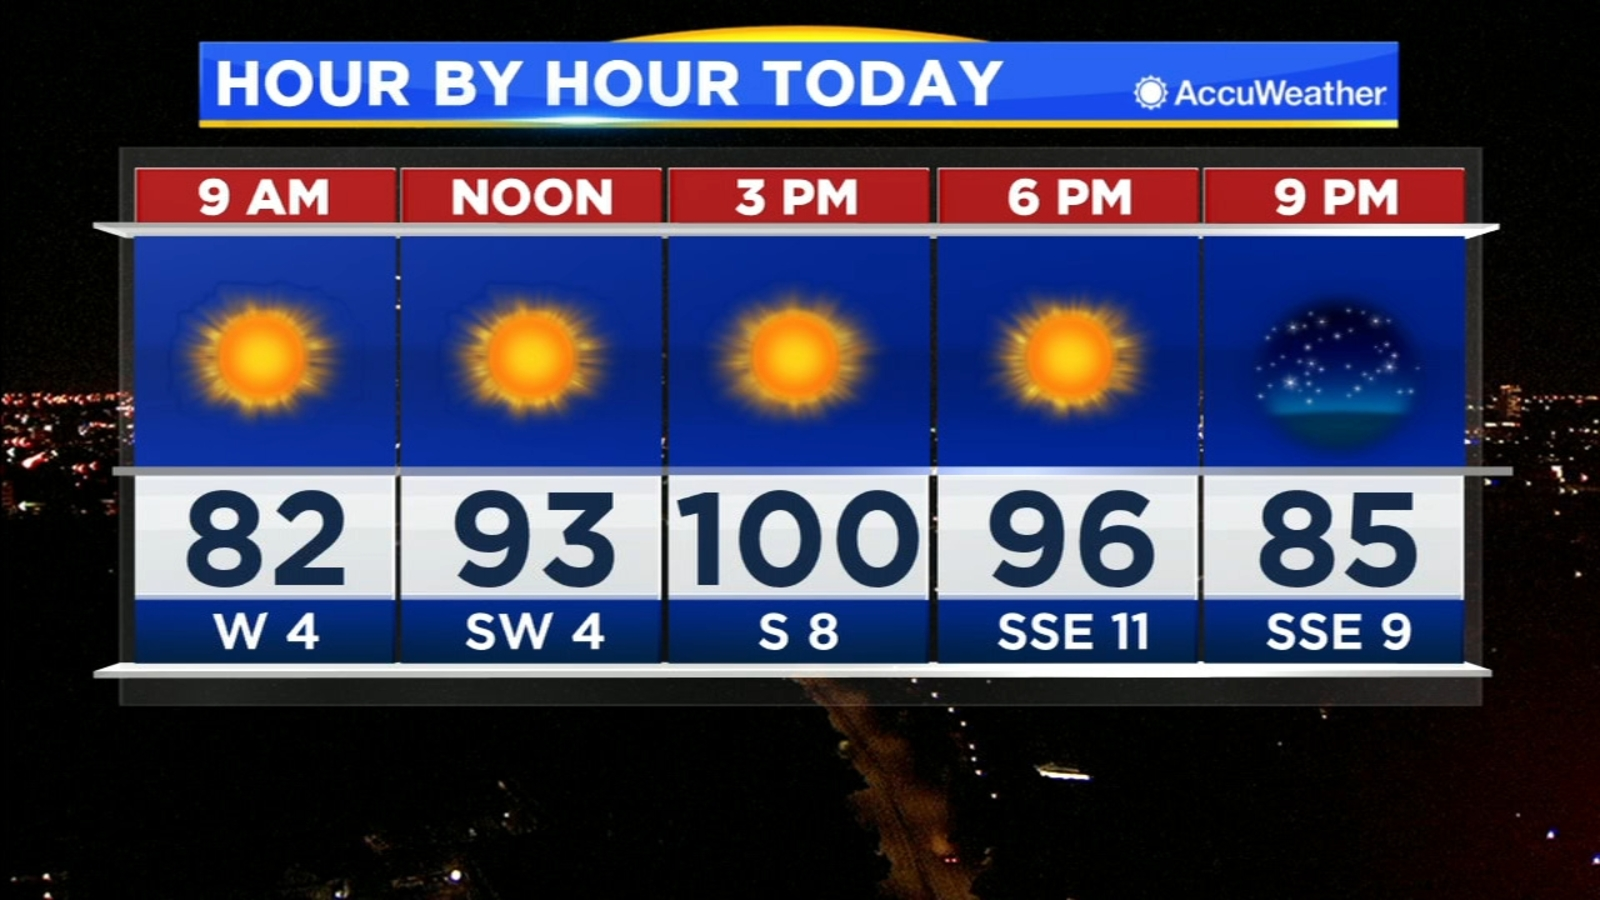 Temperatures expected to reach 100 degrees this afternoon